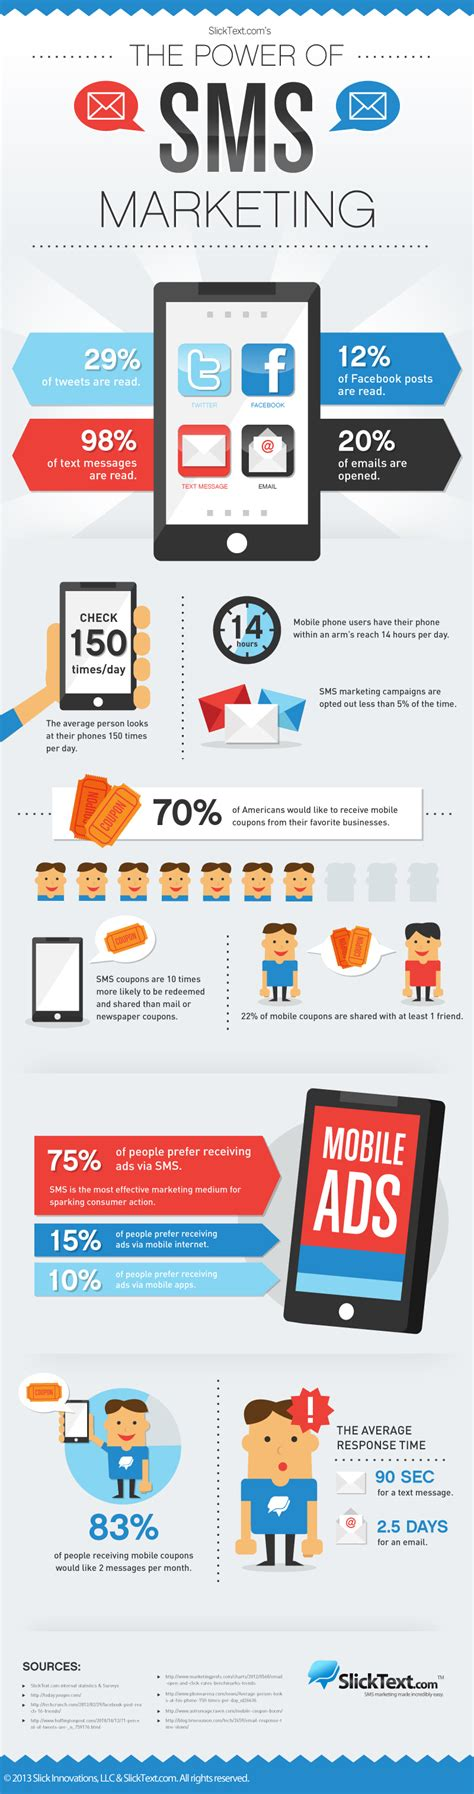 Mobile Marketing by The Power Of Text Message Marketing Infographic The